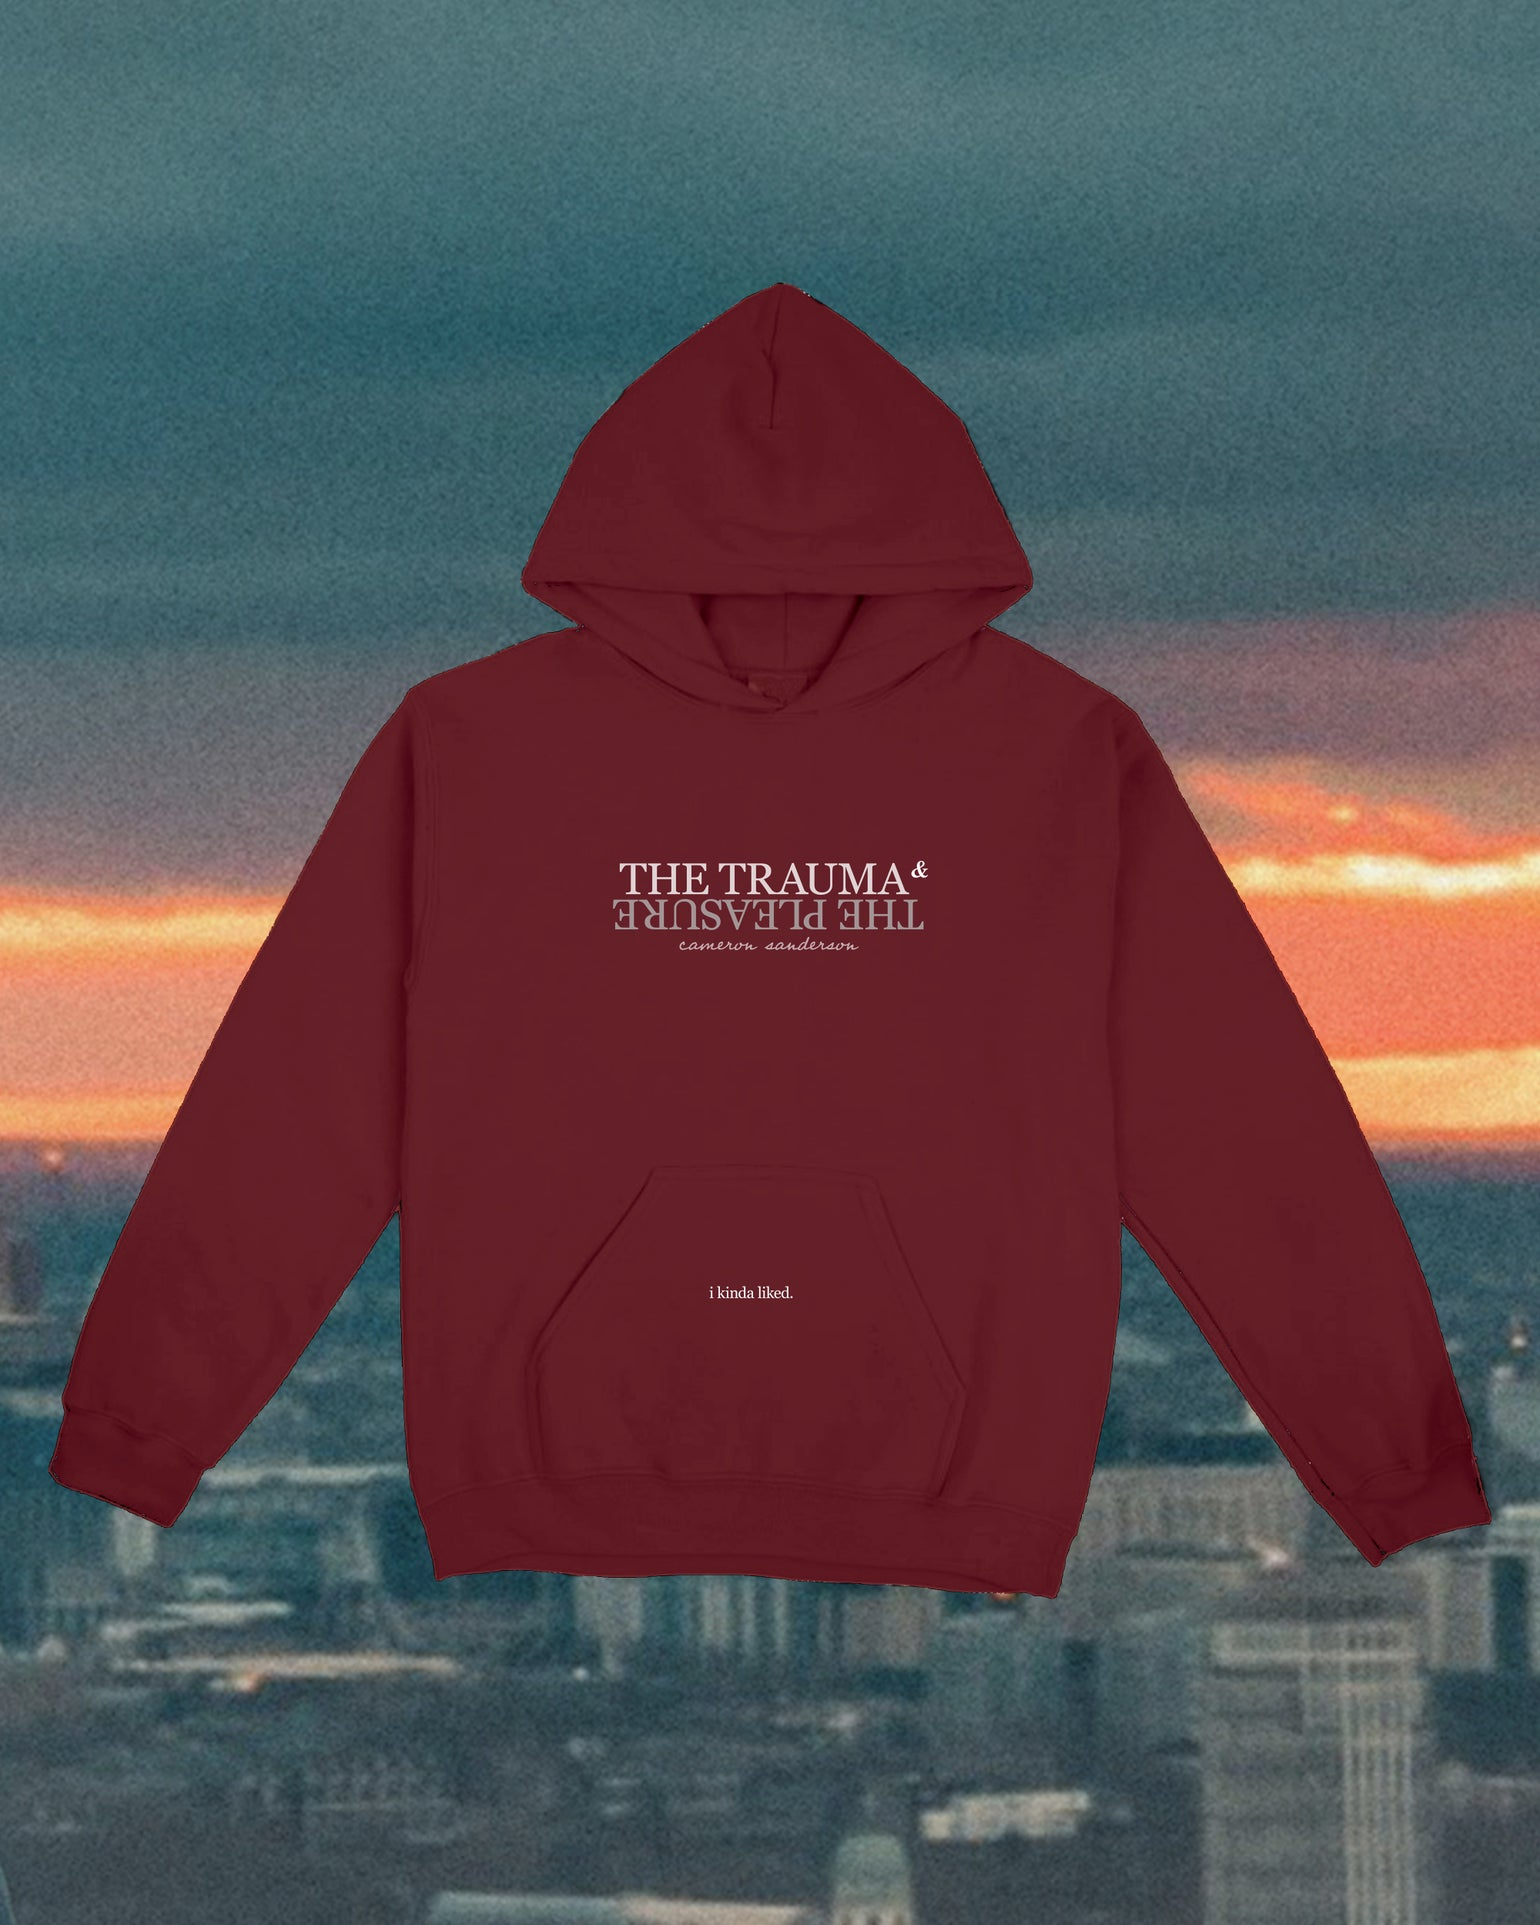 Image of The Trauma and The Pleasure: Burgundy Hoodie